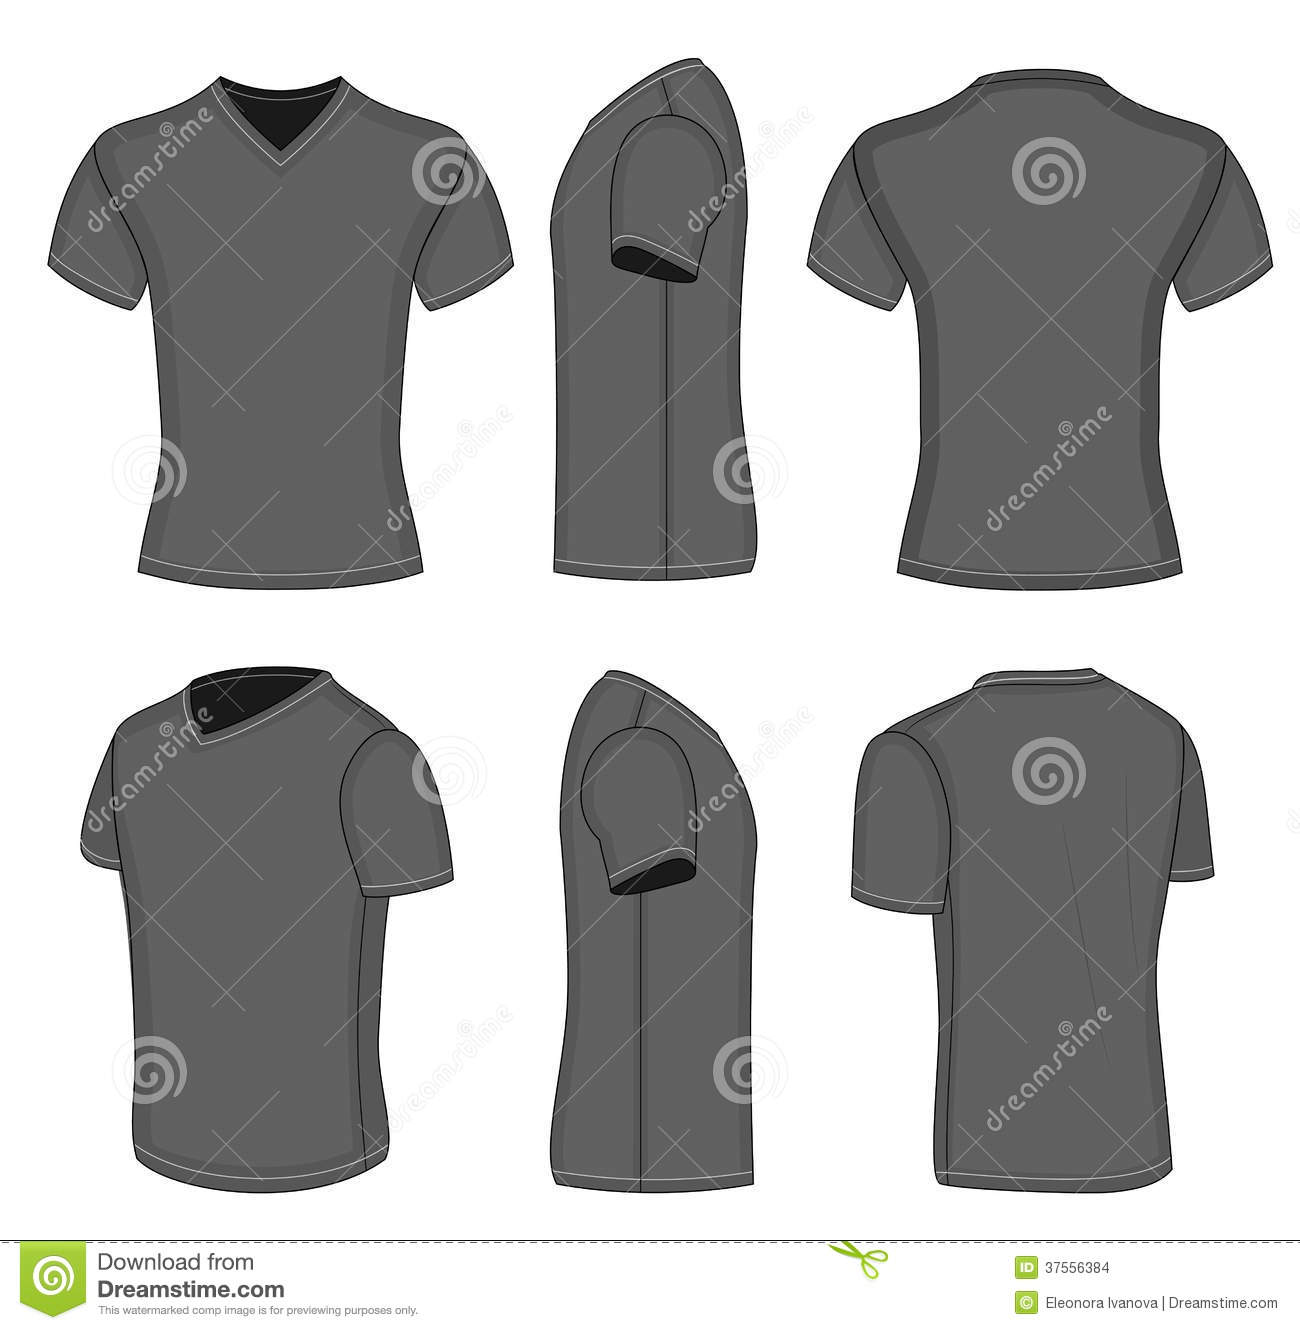 f11e25cc4 All views men's black short sleeve t-shirt v-neck design templates (front,  back, half-turned and side views). Vector illustration. No mesh.